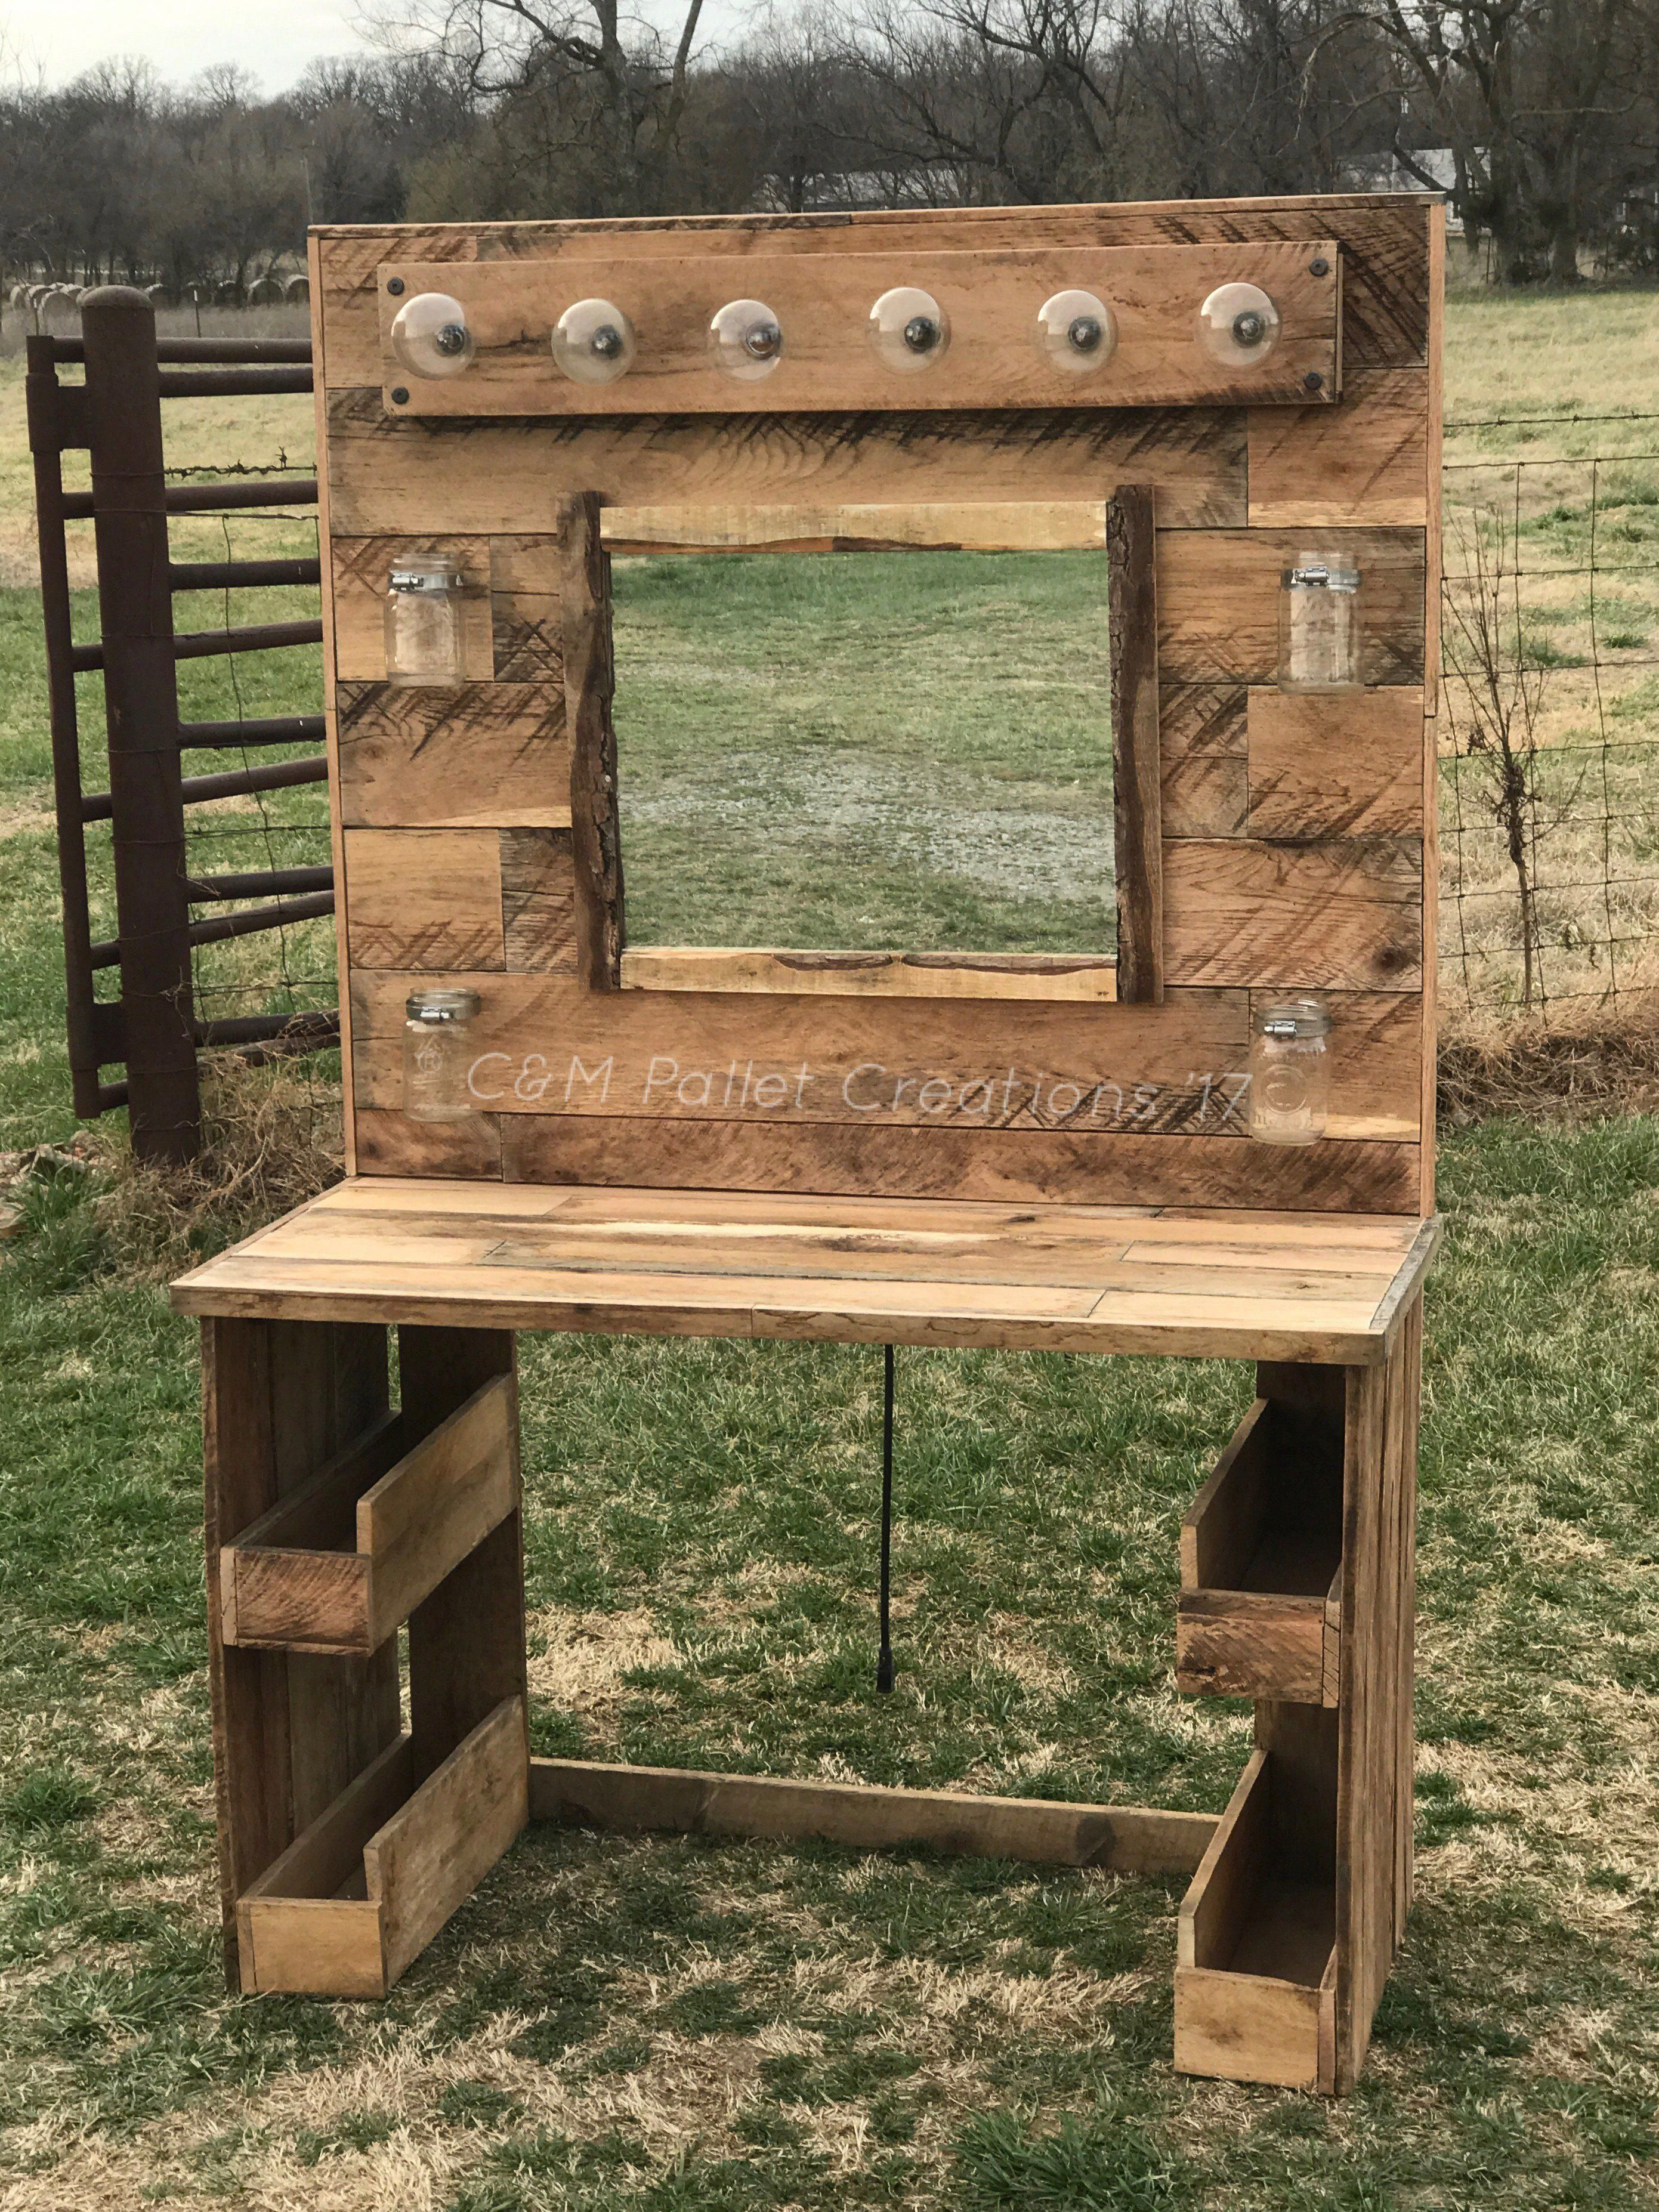 We made this Pallet Makeup Vanity using about 4 pallets